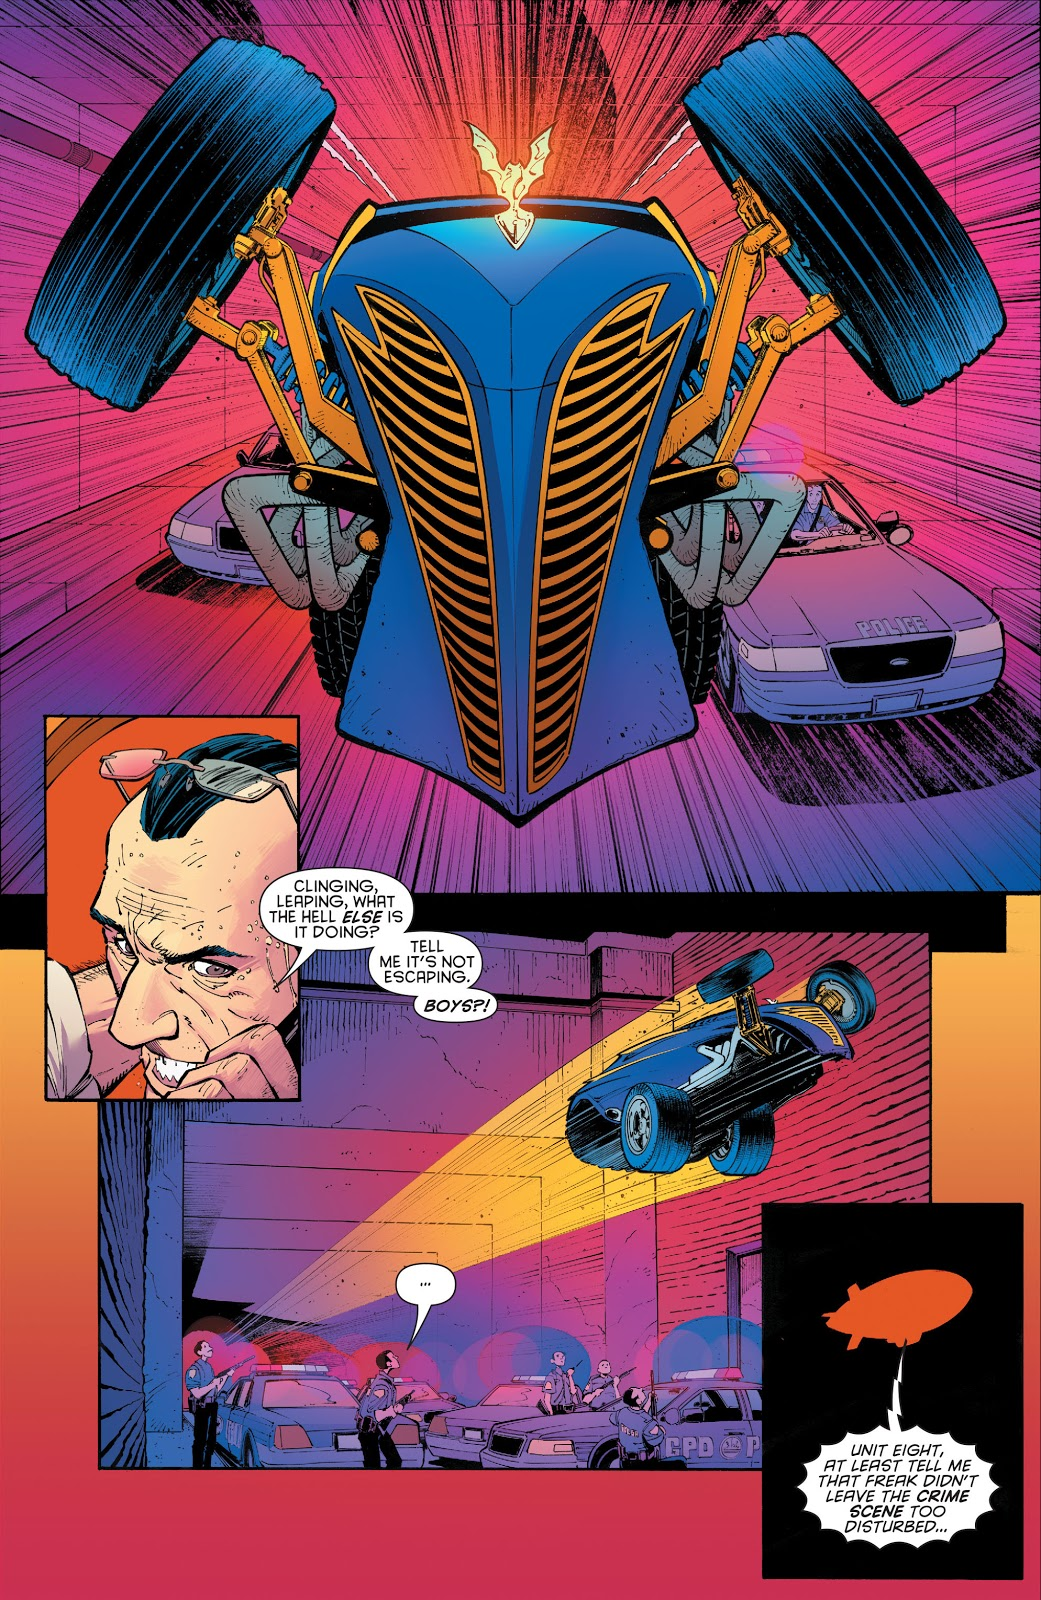 https://comicnewbies.files.wordpress.com/2019/11/the-batmobile-batman-vol.-2-25-3.jpg